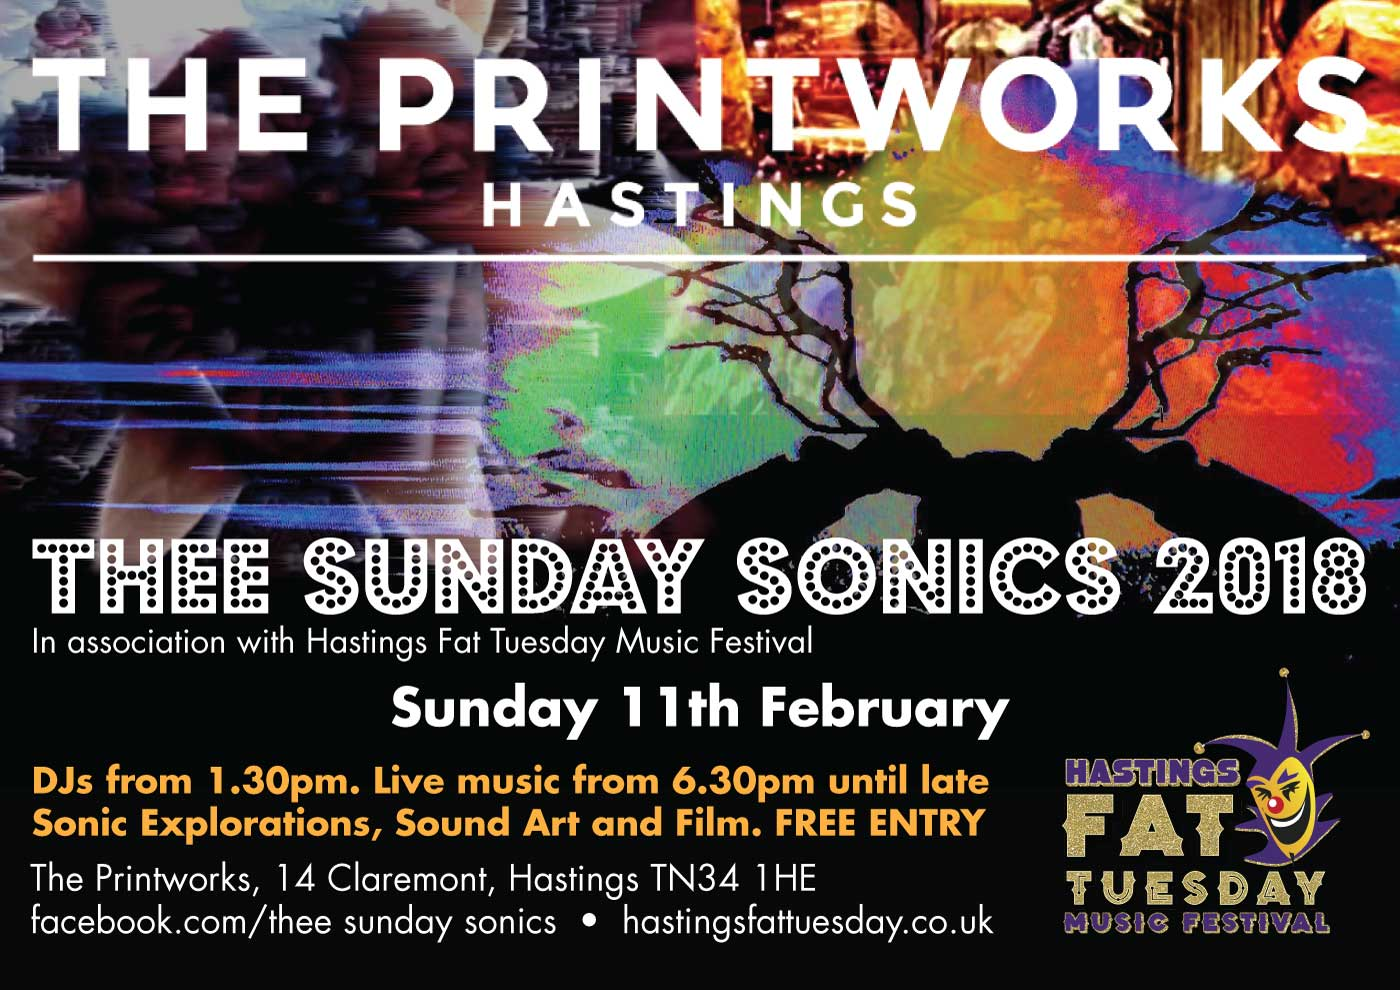 Poster design for Hastings Fat Tuesday event